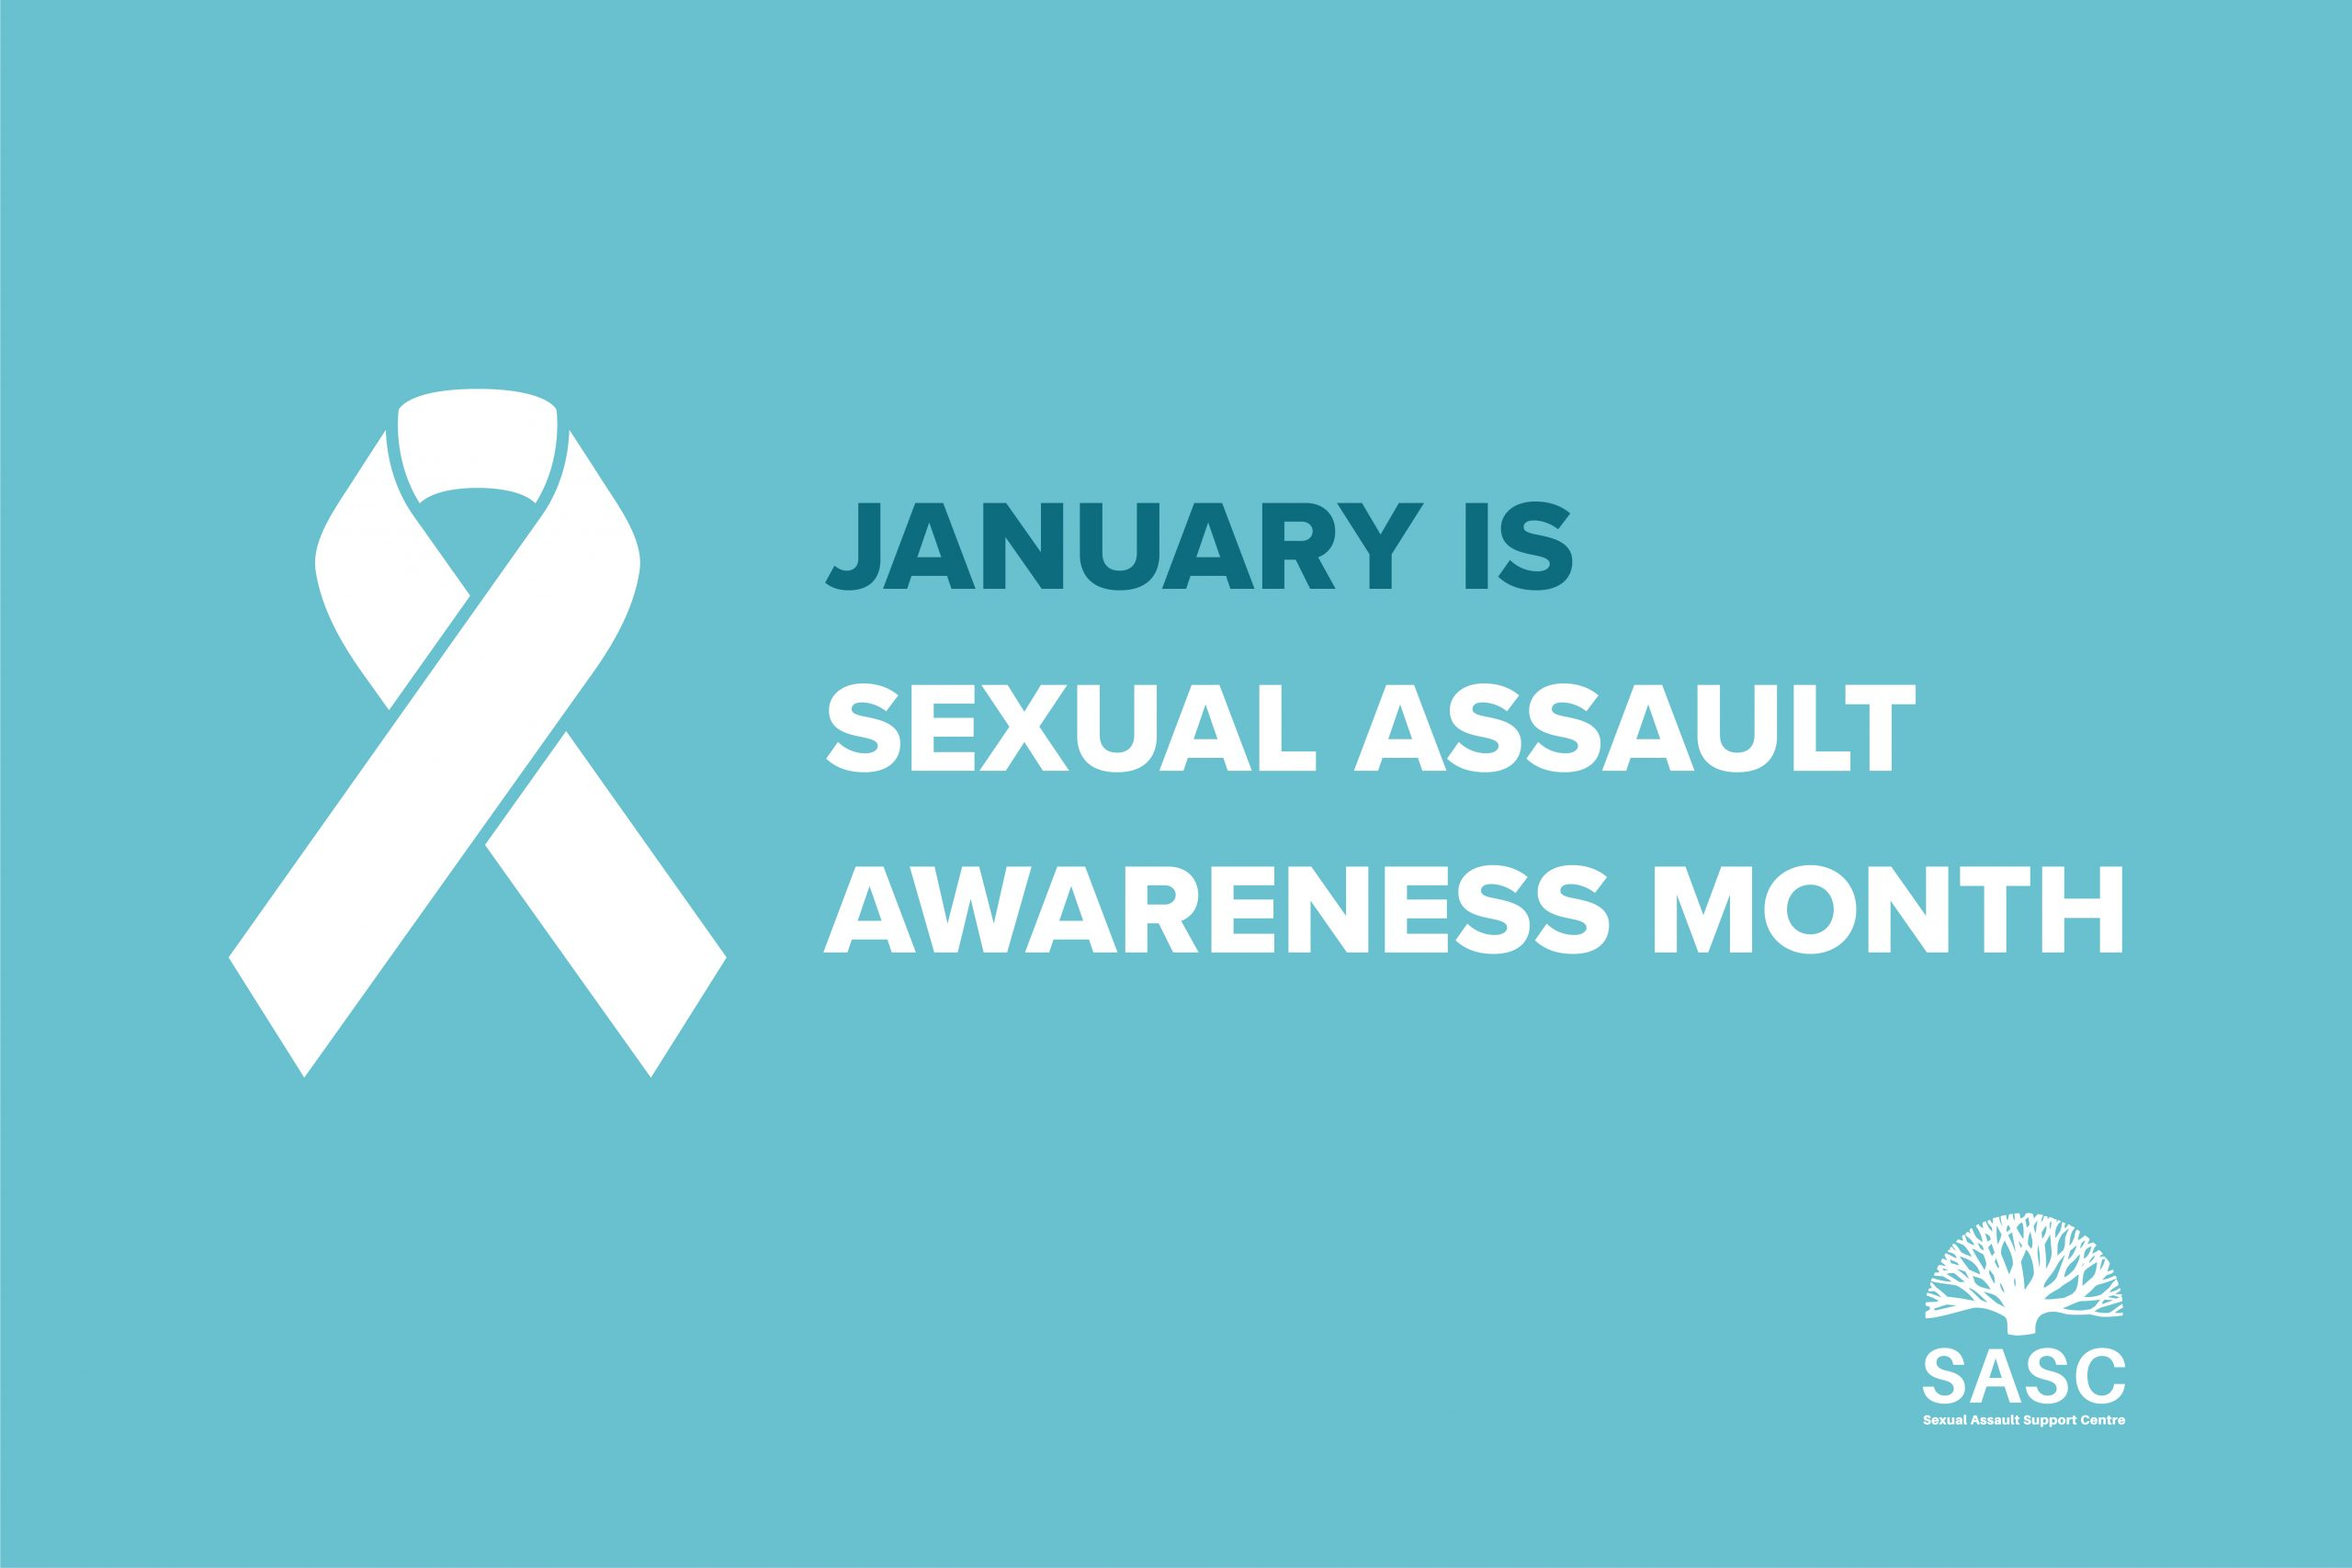 January is Sexual Assault Awareness Month